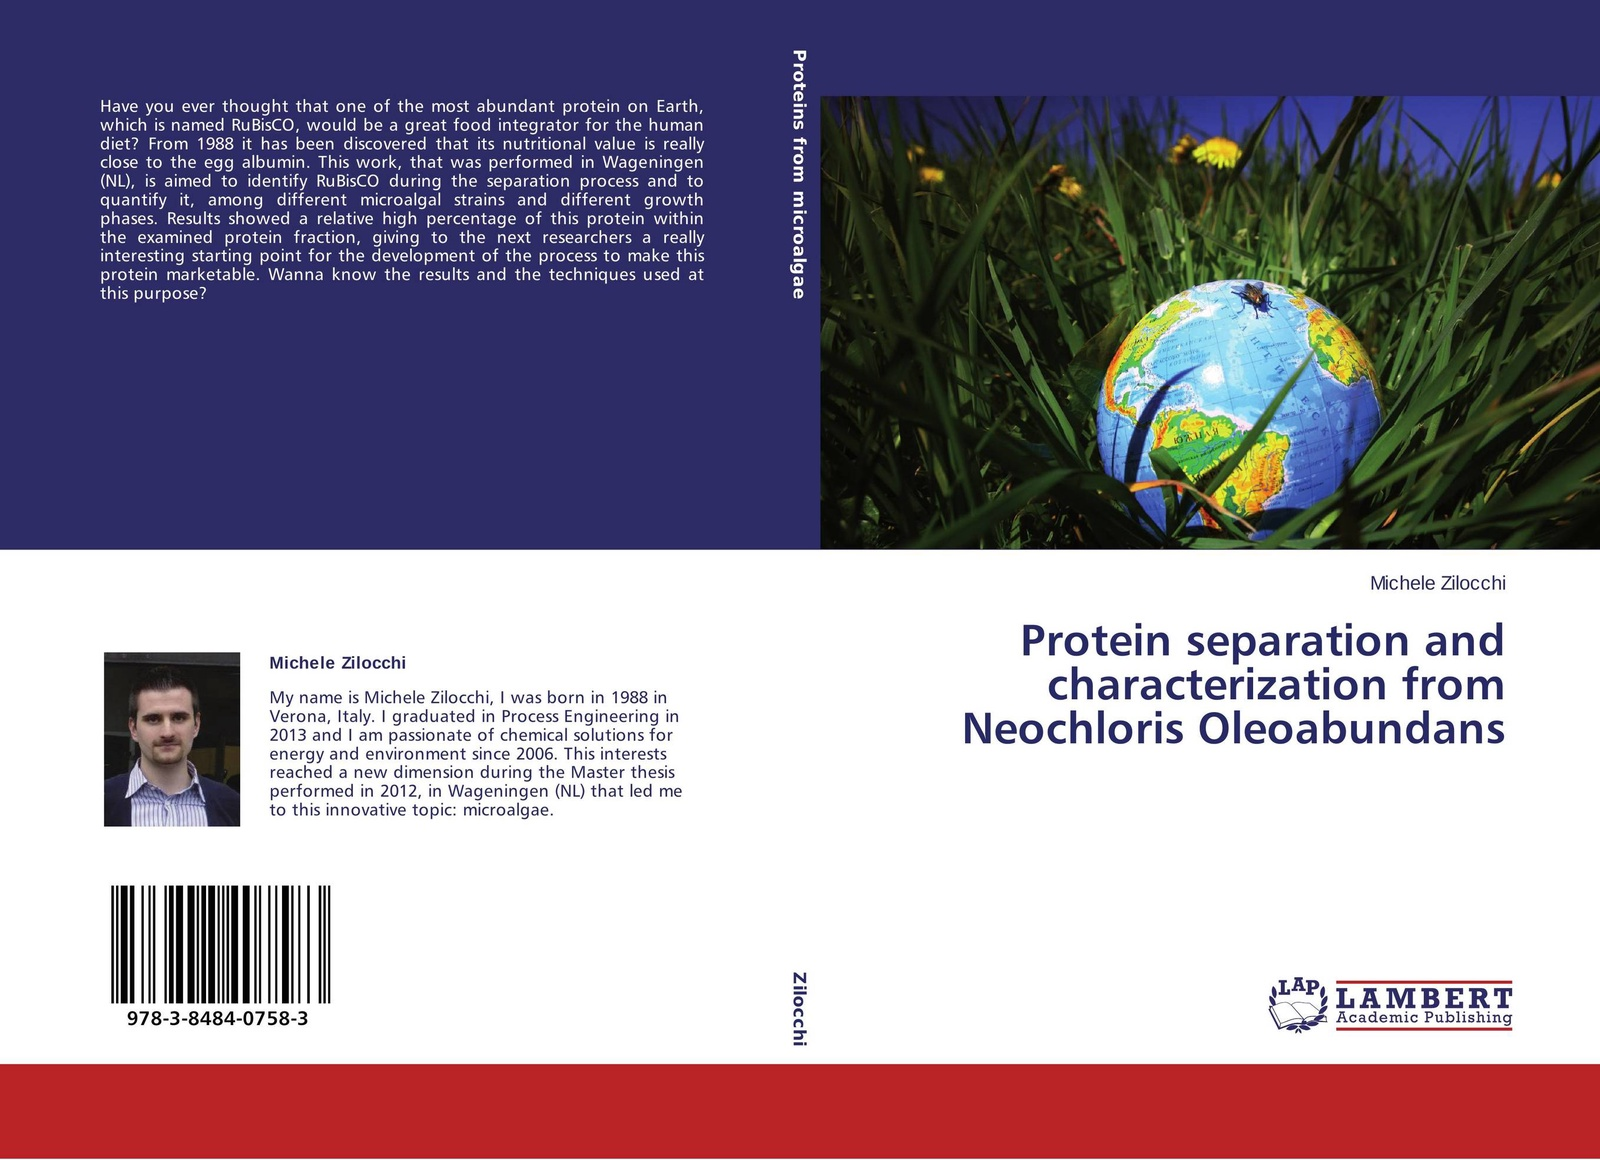 Michele Zilocchi Protein separation and characterization from Neochloris Oleoabundans the high protein cookbook